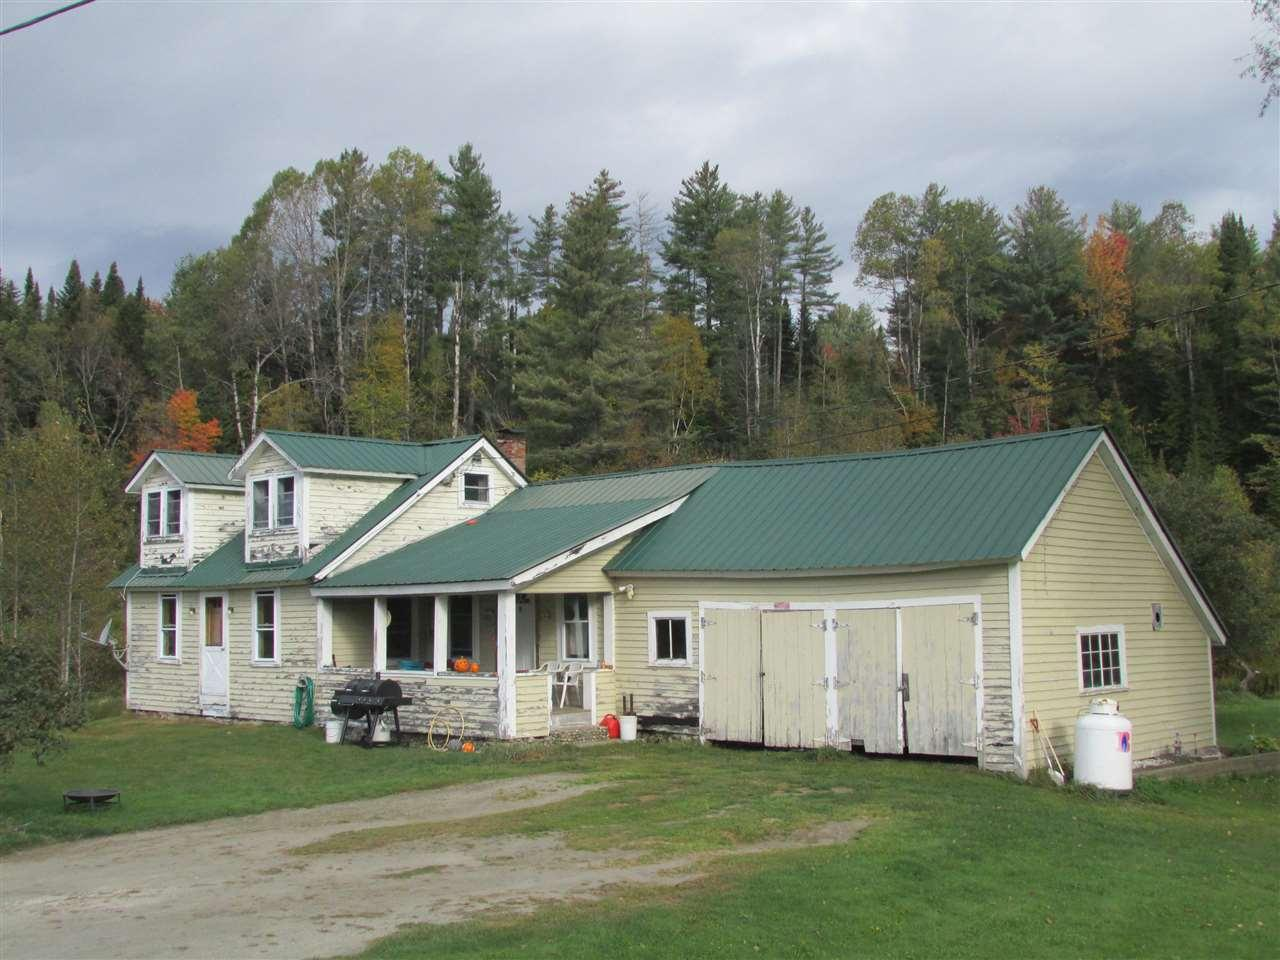 craftsbury common senior personals Craftsbury outdoor center a 4-season resort tucked beside a secluded lake in the tranquil northeast kingdom escape the frantic pace and actively enjoy the great vermont outdoors.